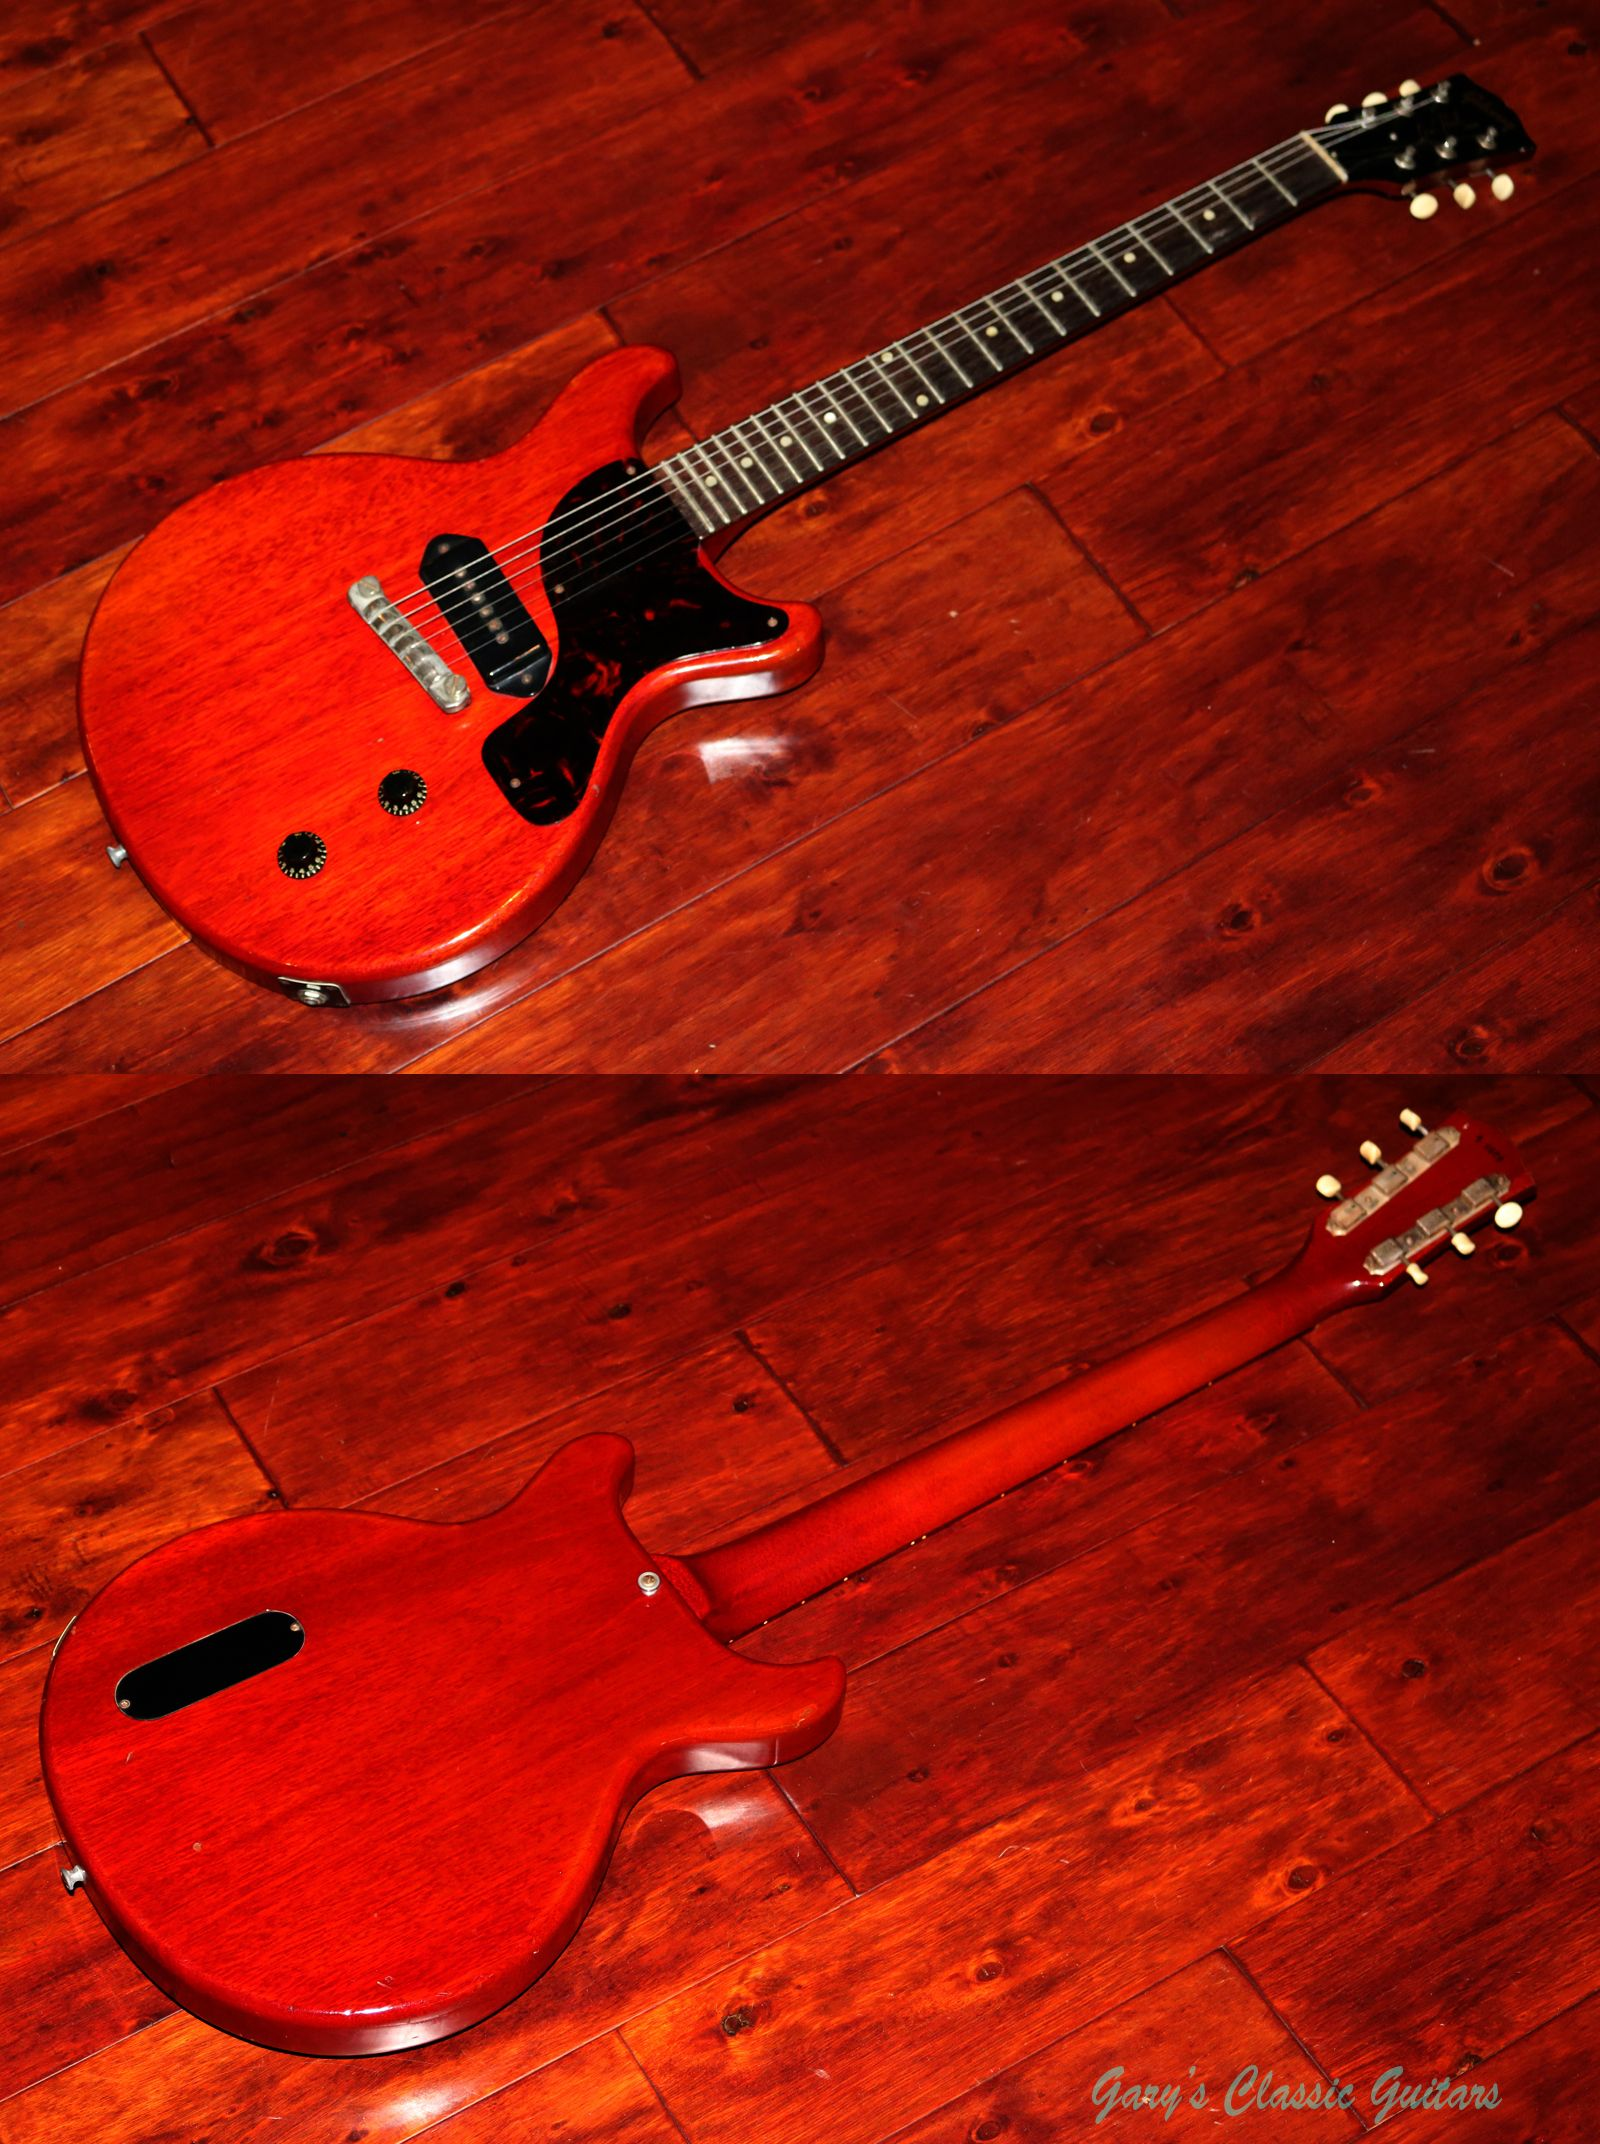 Very cool 1959 Gibson Les Paul Junior....just in! http://www.garysguitars.com/c…/1959-gibson-les-paul-junior-0